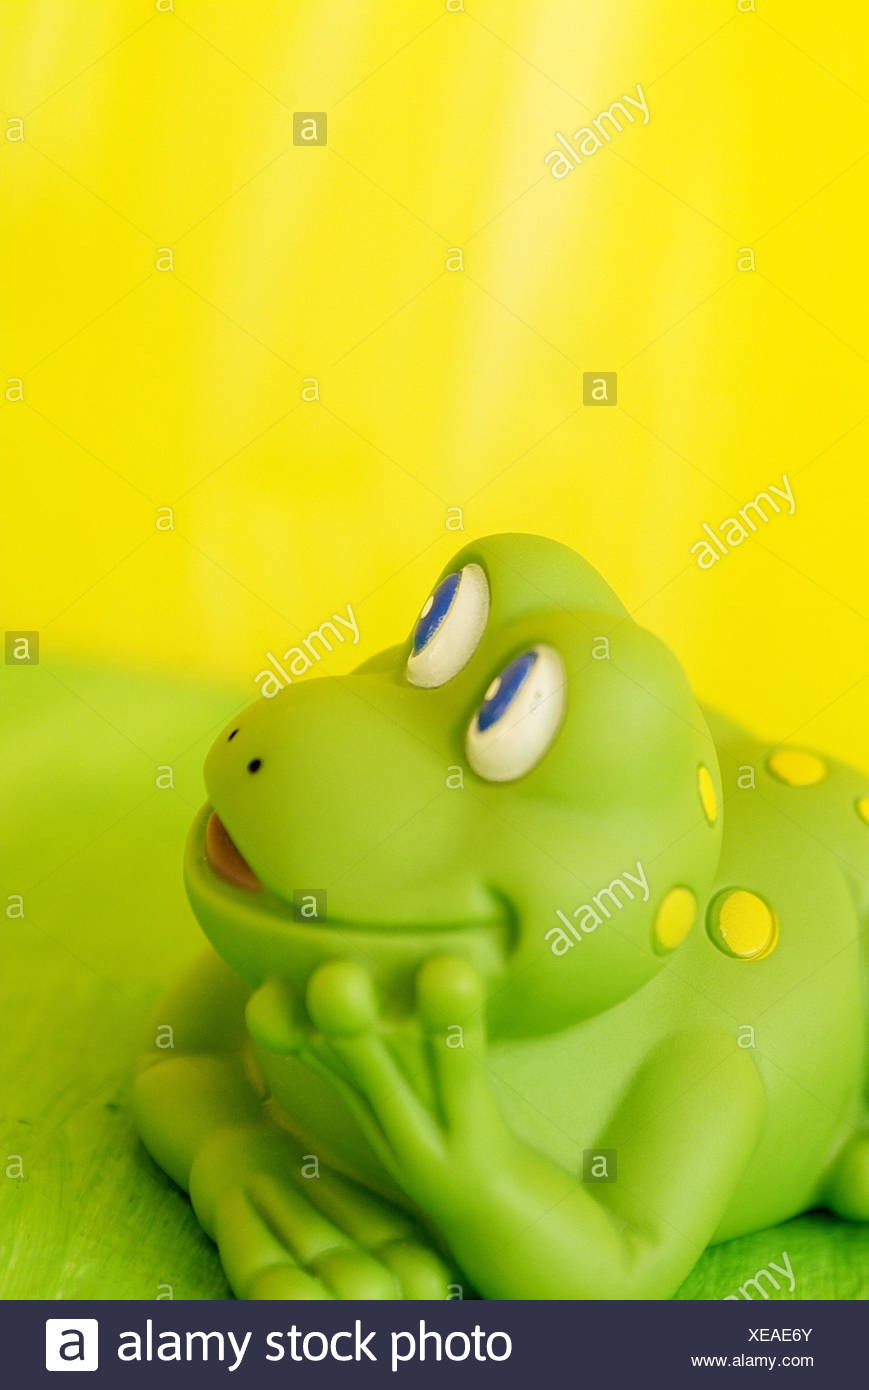 Rubber Frog Stock Photos & Rubber Frog Stock Images - Alamy